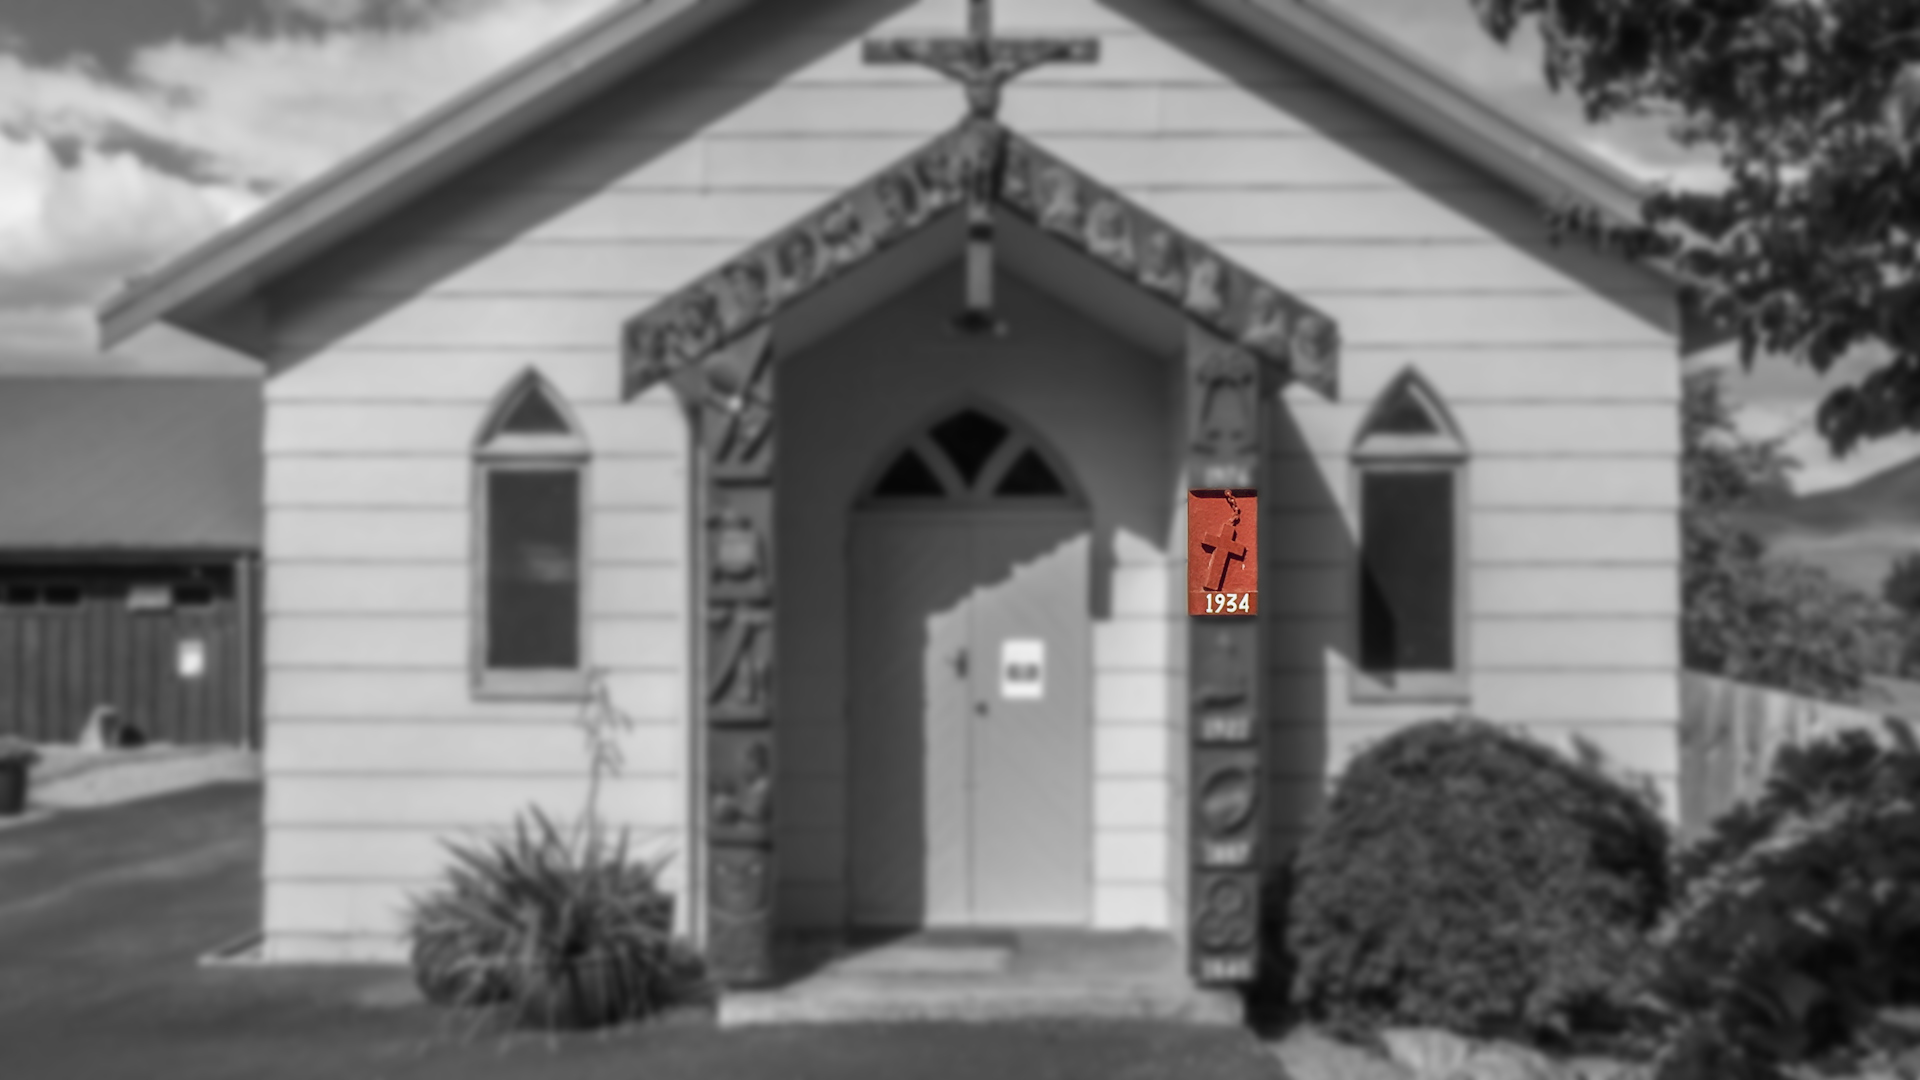 1934: Whakatane being made into one parish with Taneatua and being served by the Irish diocesan clergy